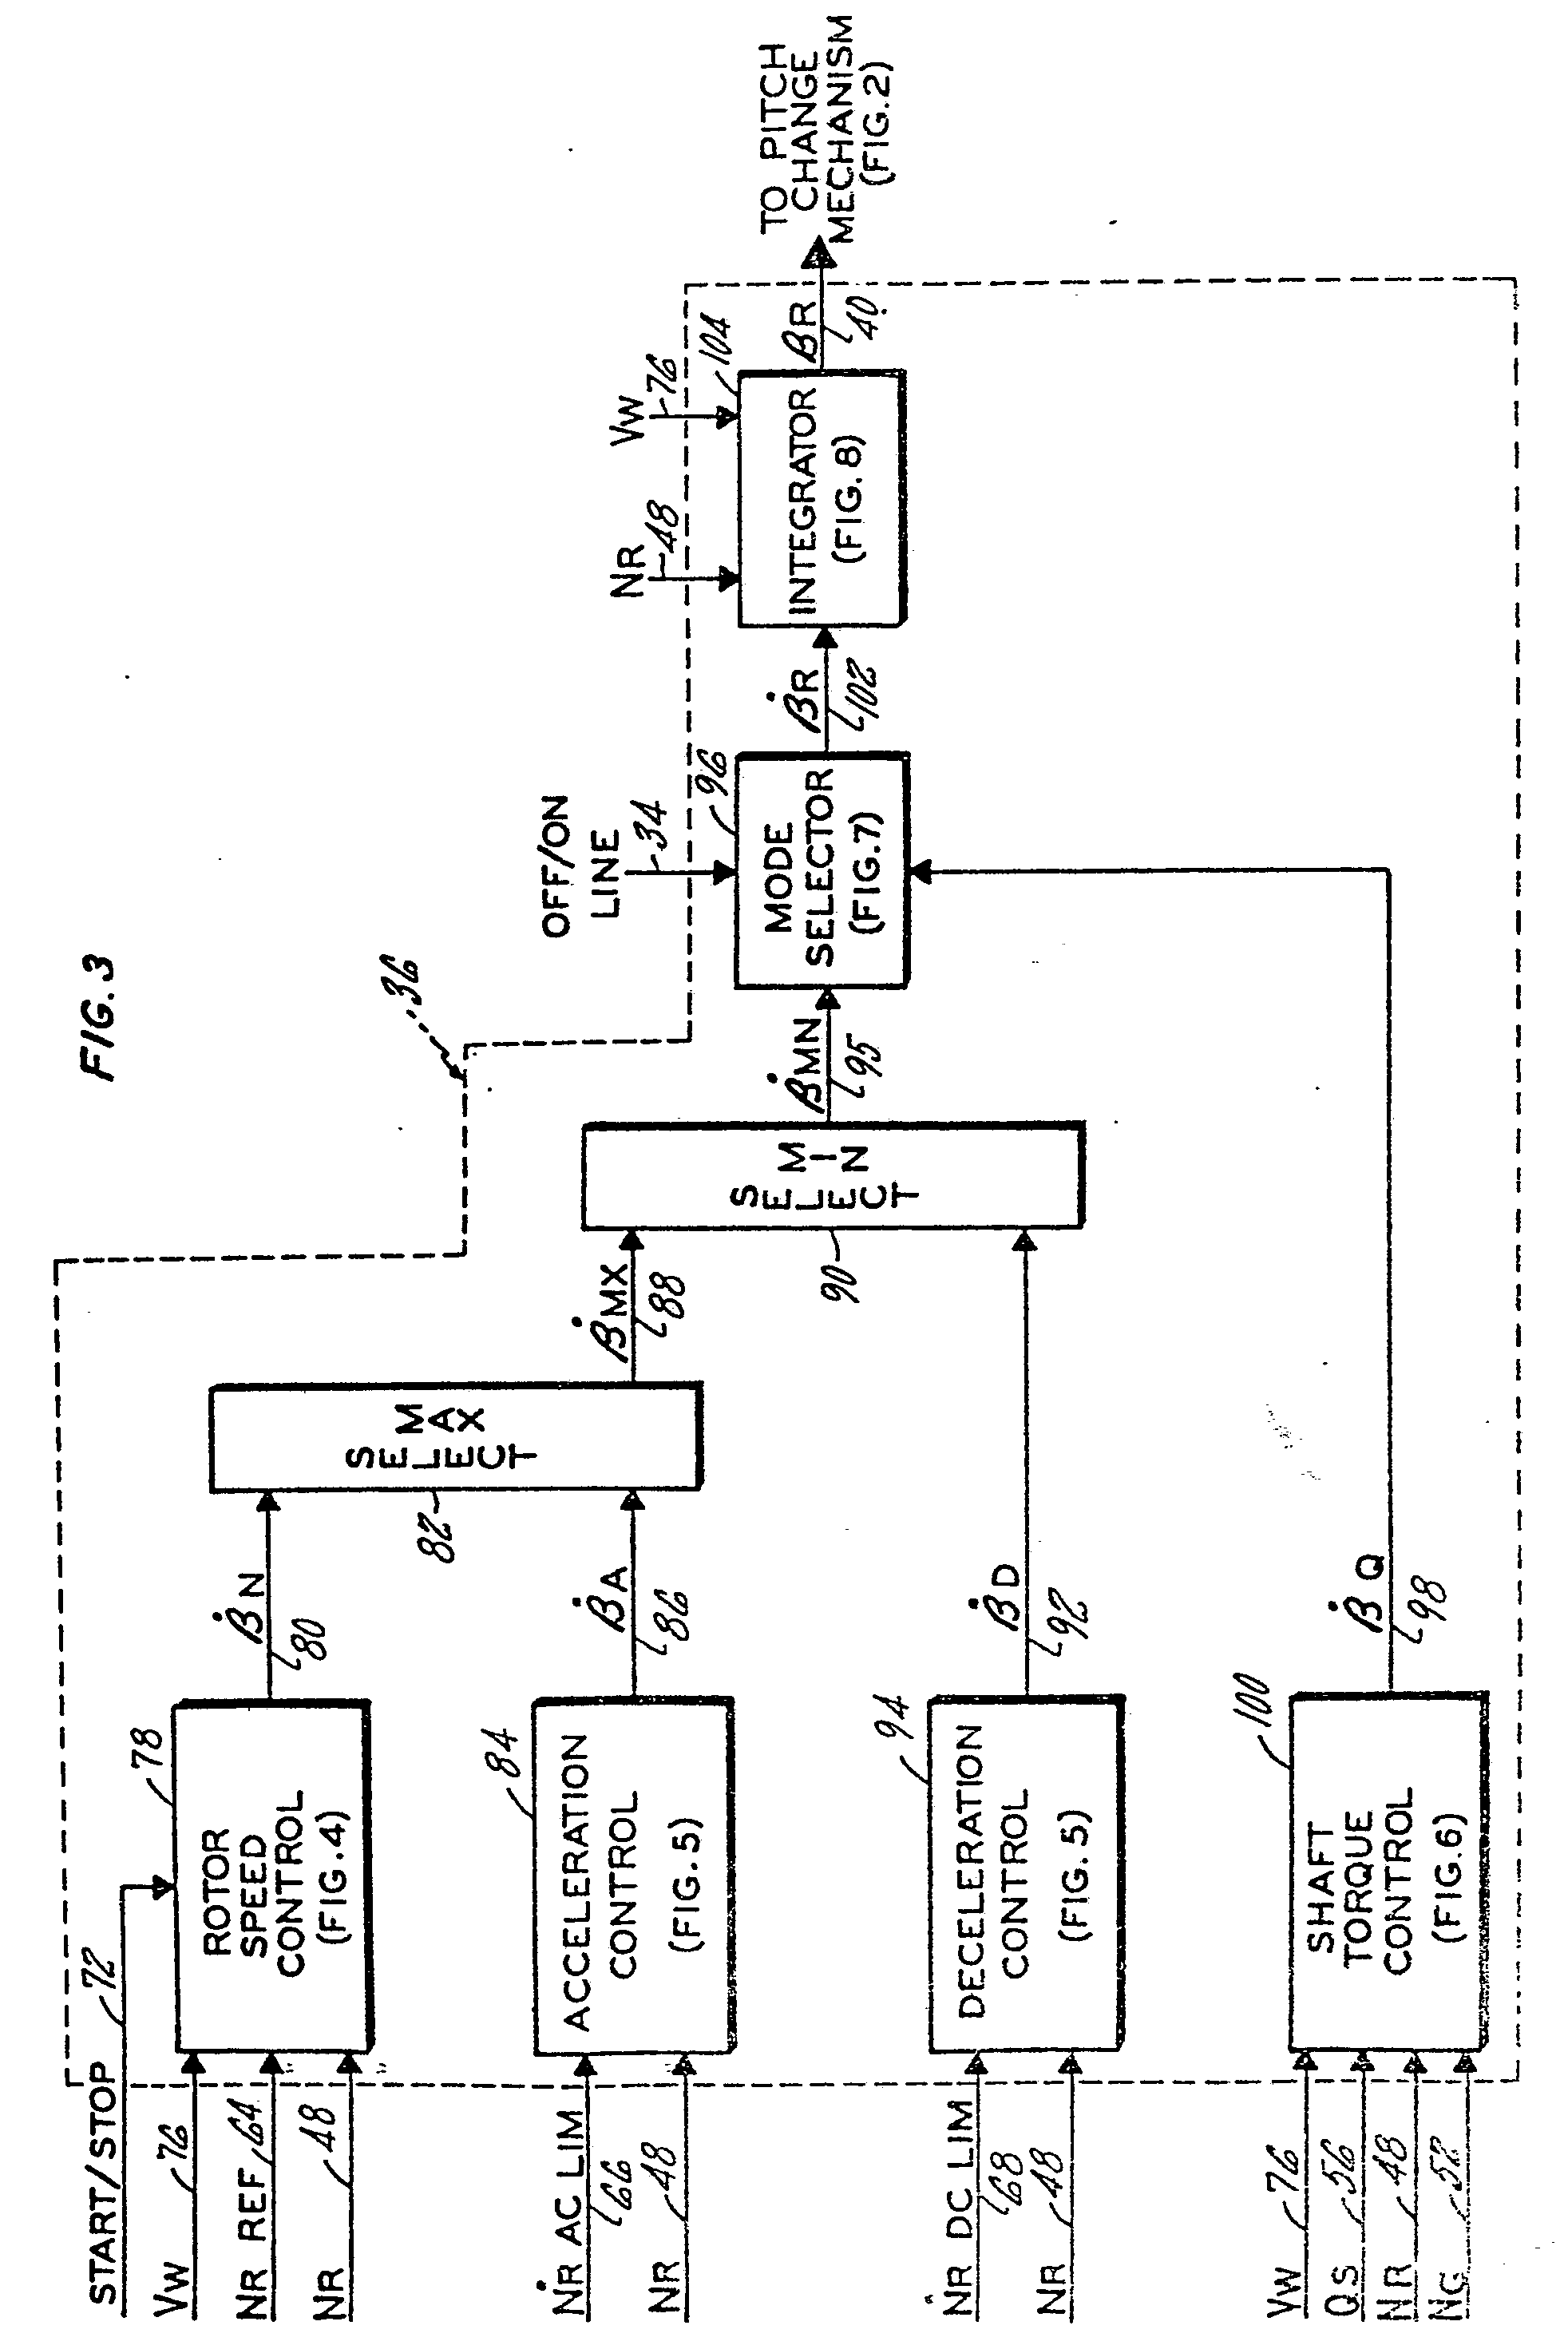 Patent EP B1 Multi mode control system for wind turbines